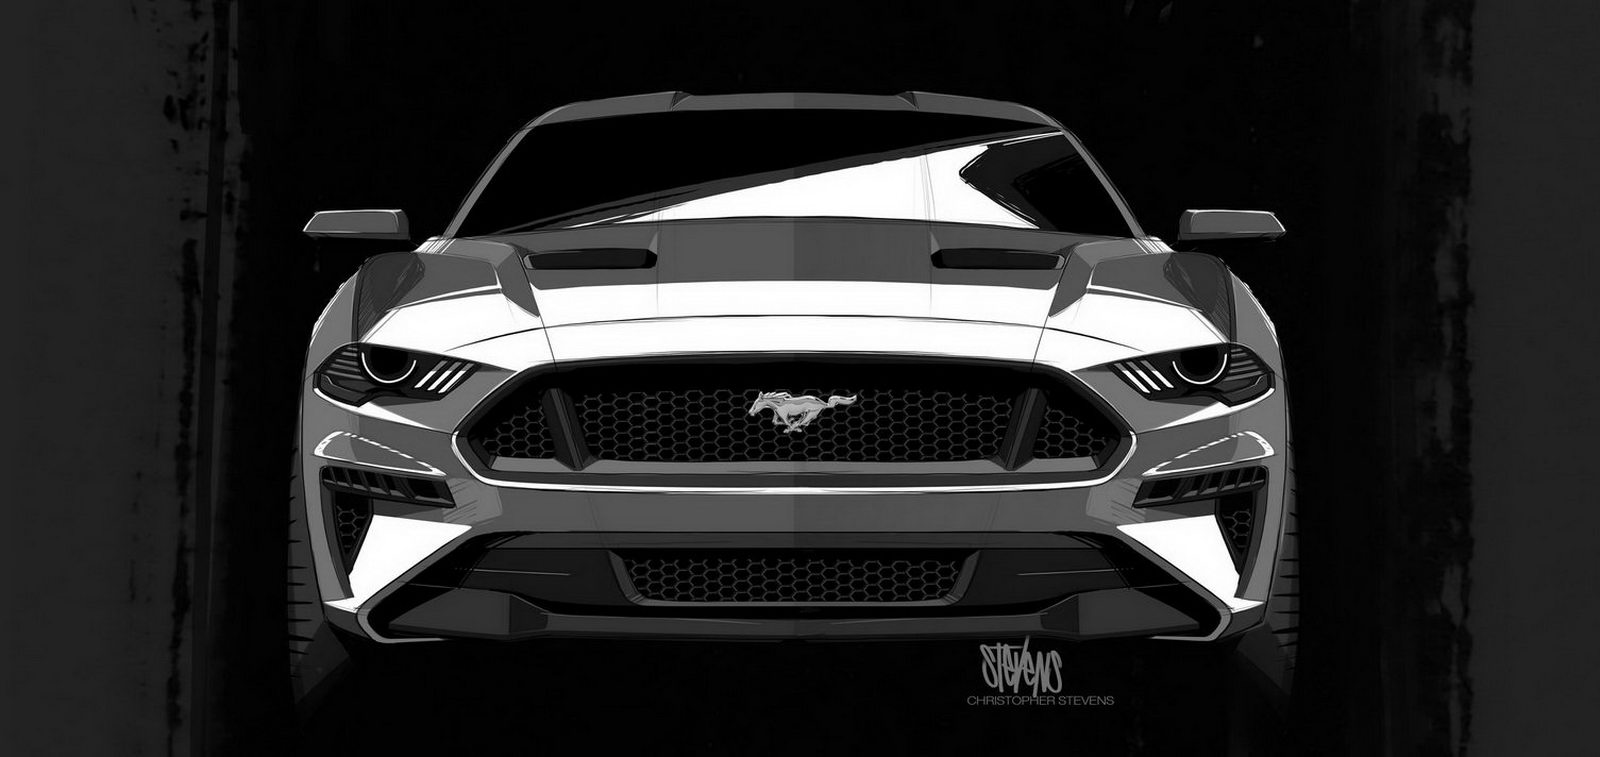 Ford Mustang GT facelift 2018 5